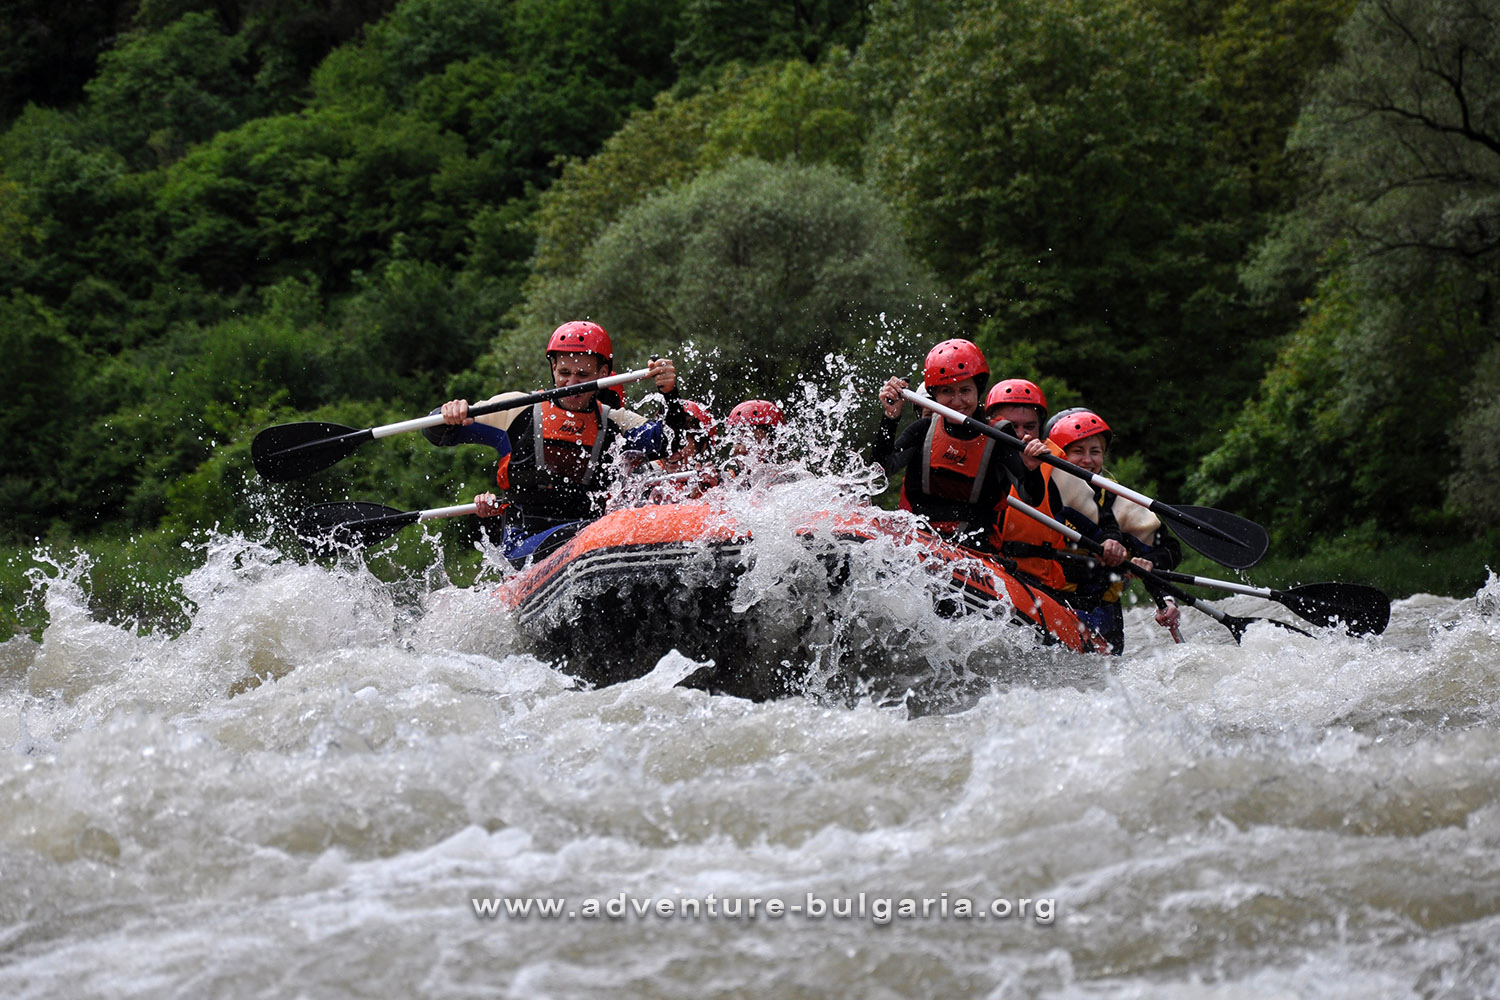 Team Building with rafting in Bulgaria